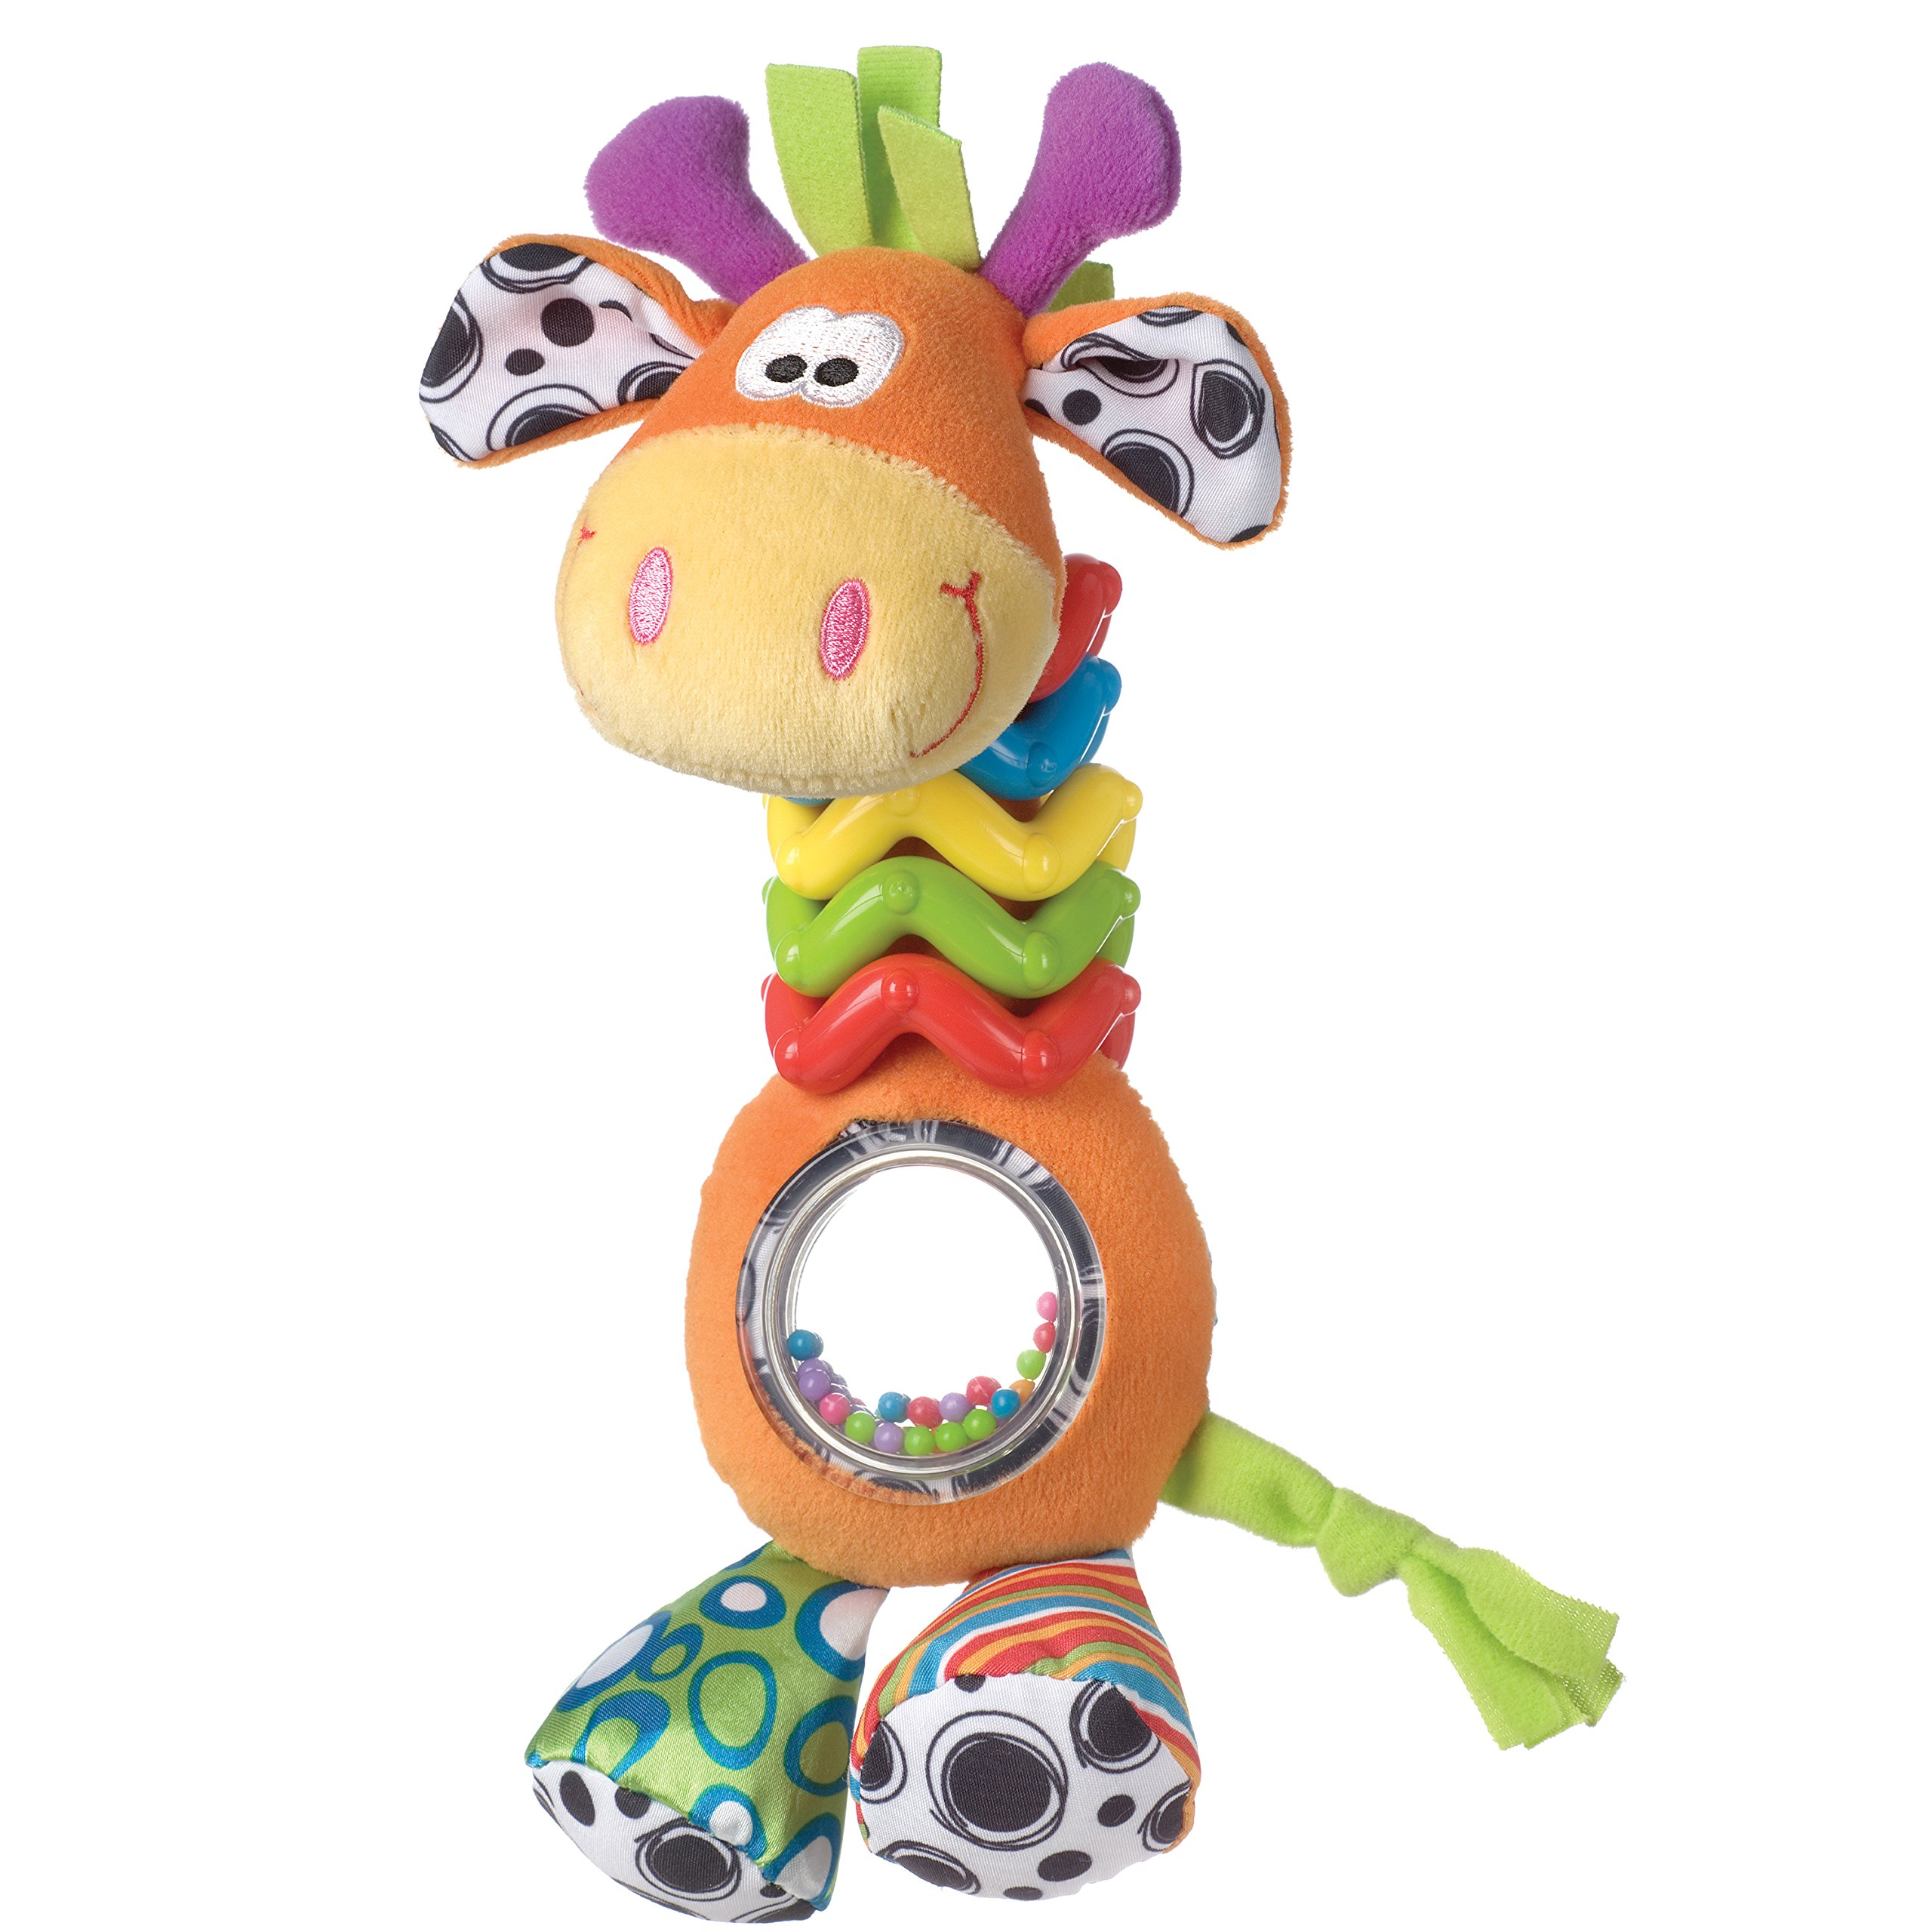 Playgro MF Click Bitz for baby infant toddler children 0181579, Playgro is Encouraging Imagination with STEM/STEM for a bright future - Great start for a world of learning